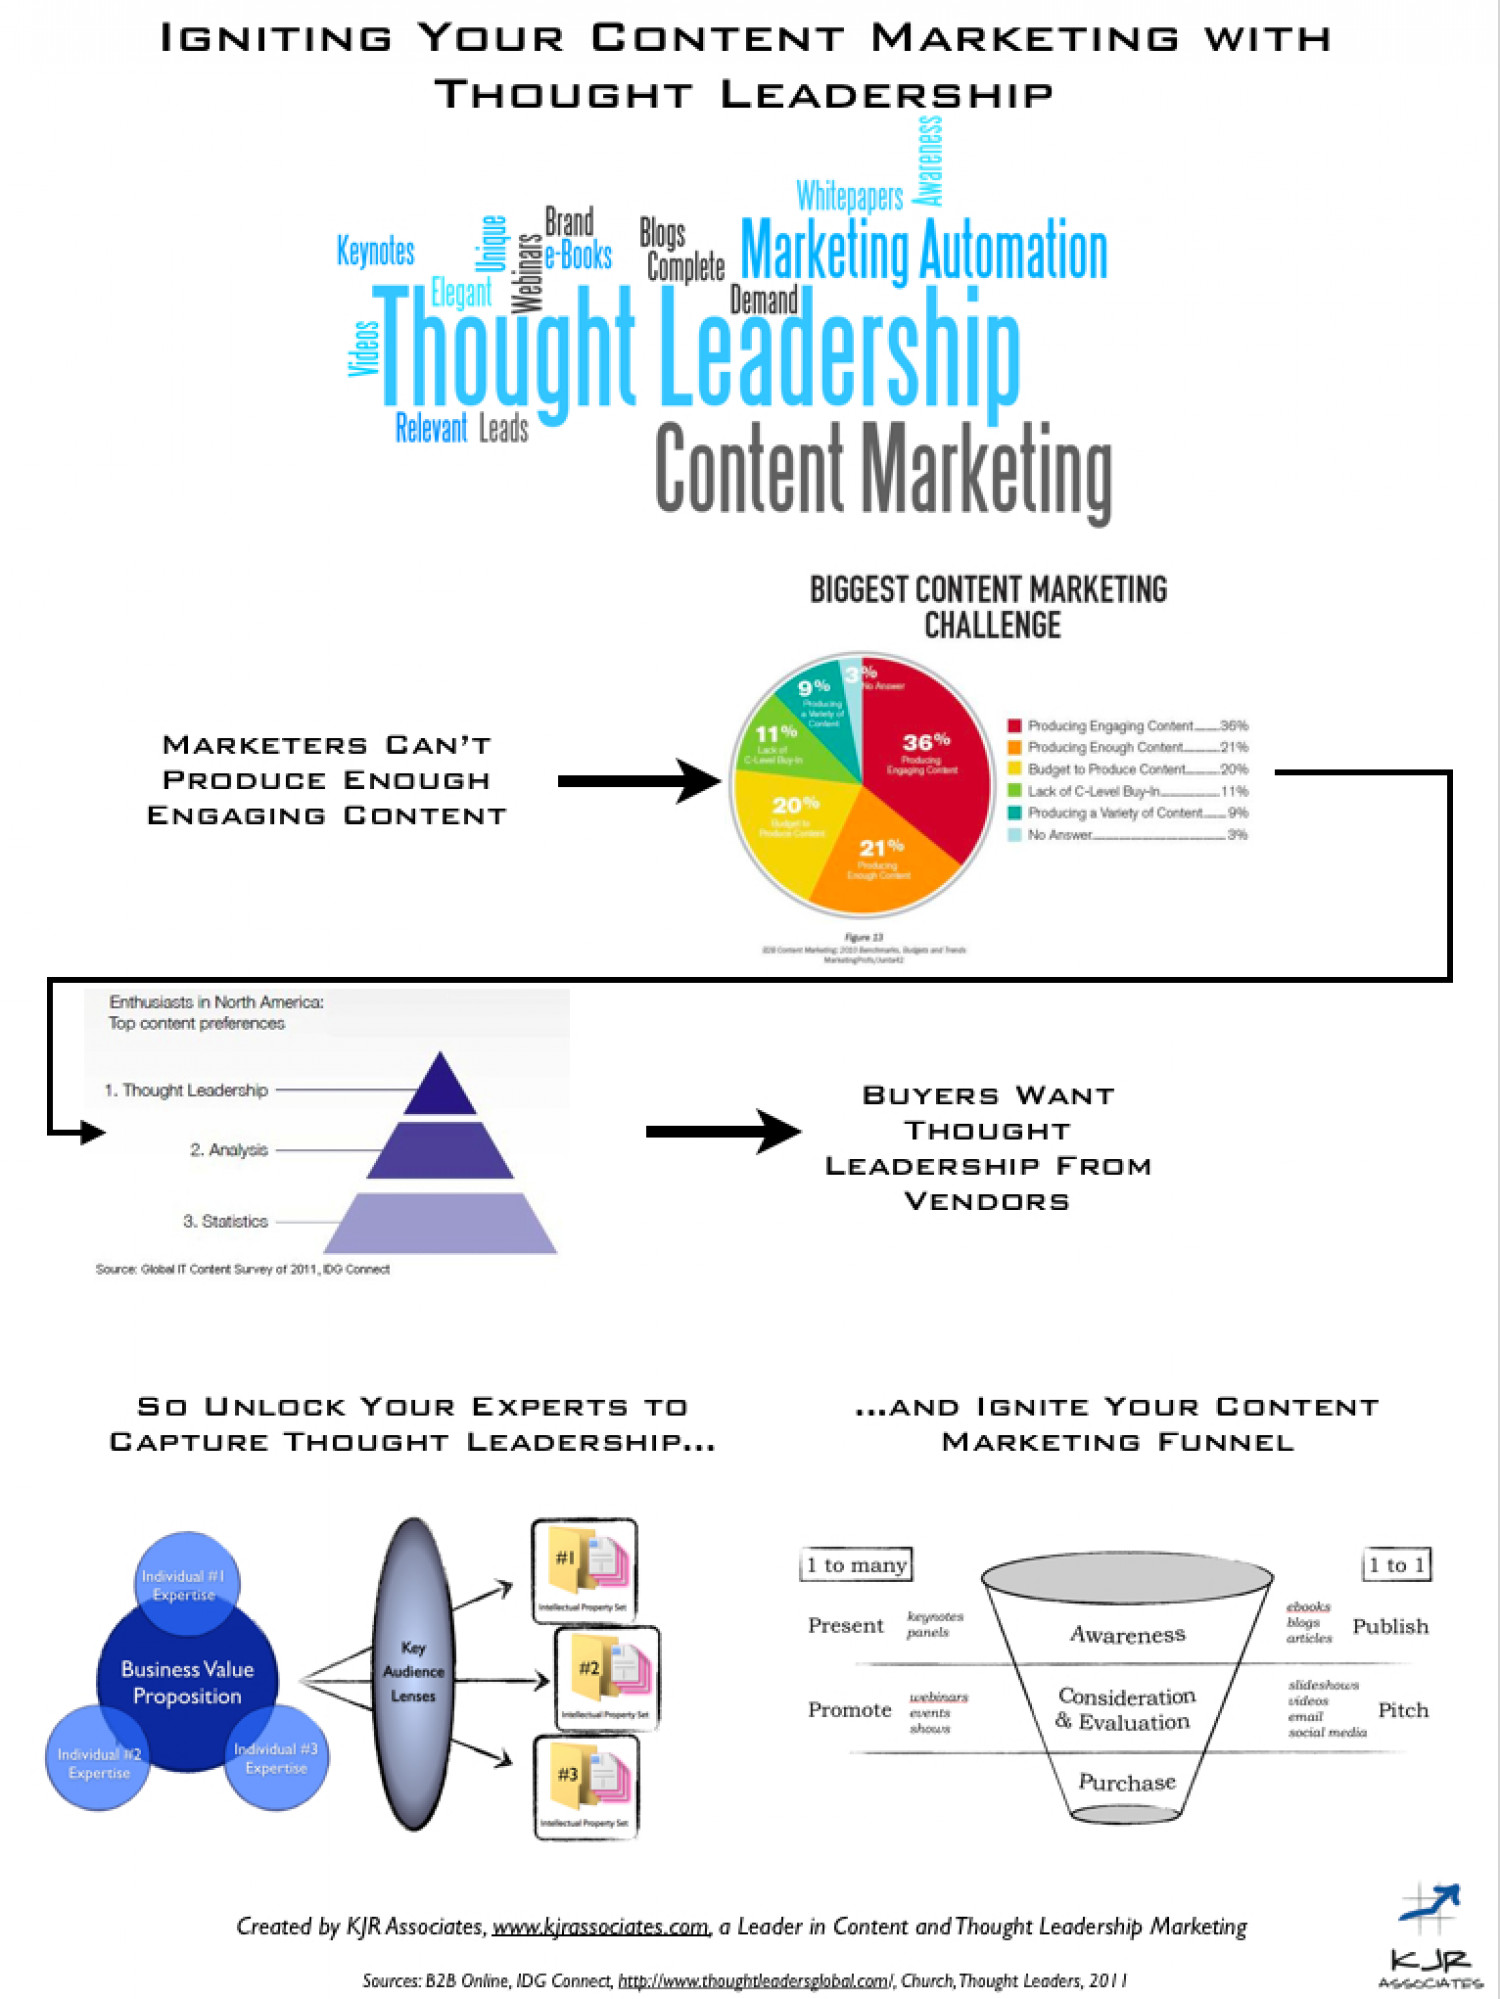 Igniting Content Marketing With Thought Leadership